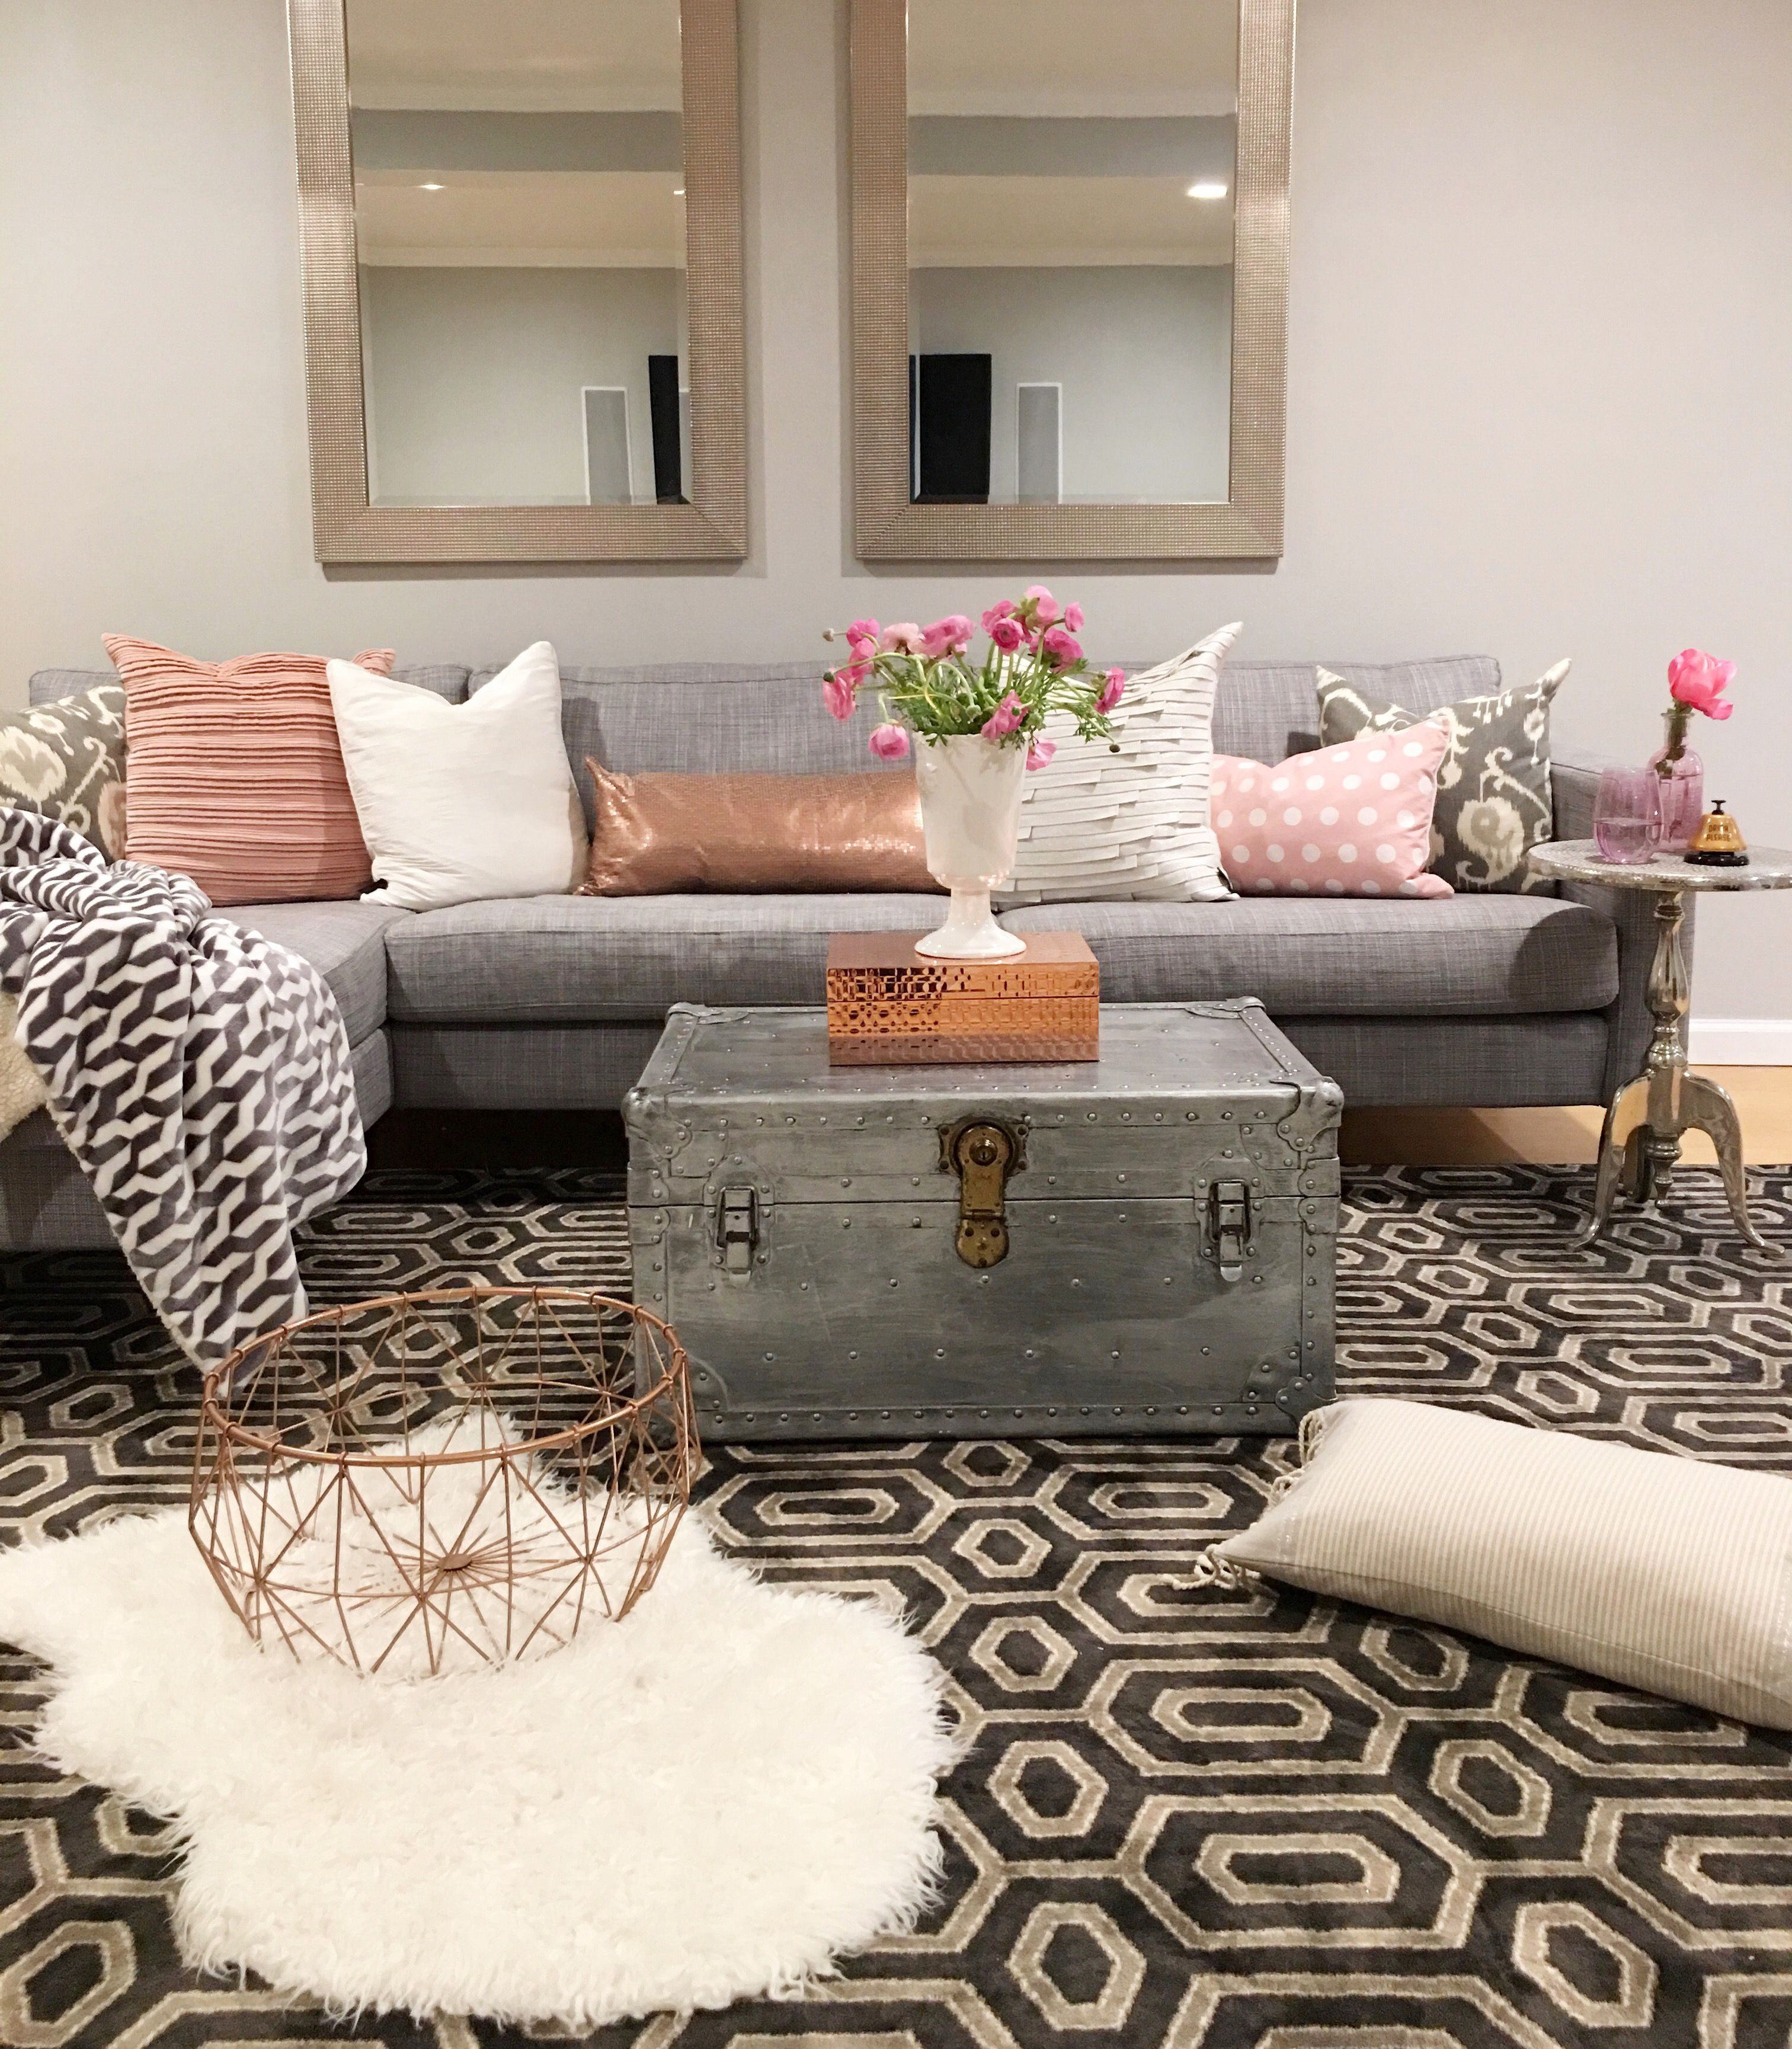 Modern Boho Basement Chic Living Room Design Boho Living Room Decor Boho Chic Living Room